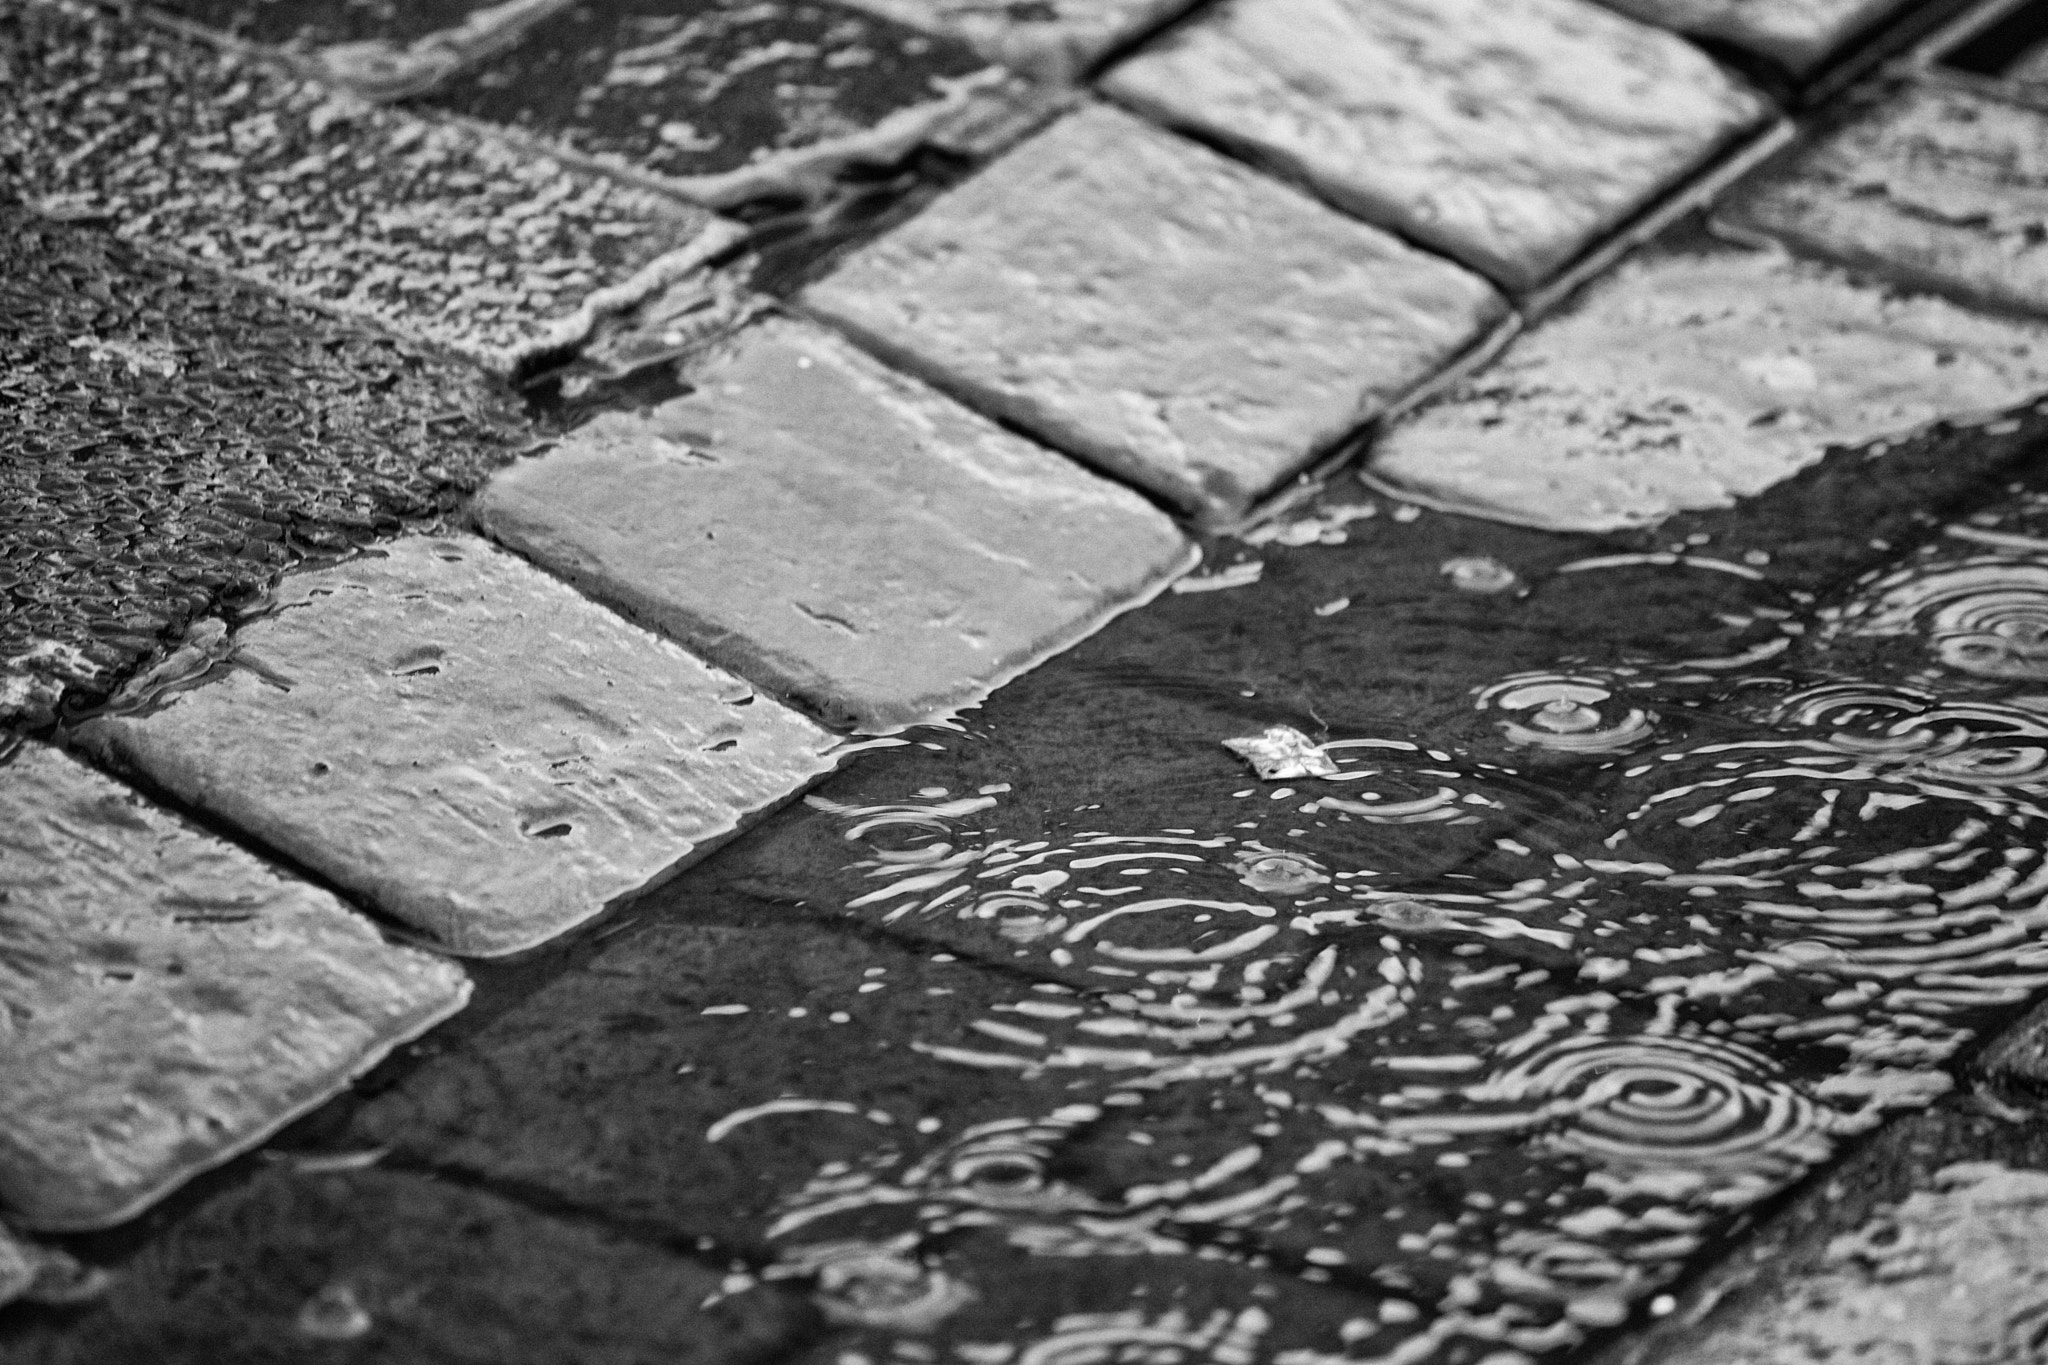 Photograph Wet Flag Stones by David Thurston on 500px